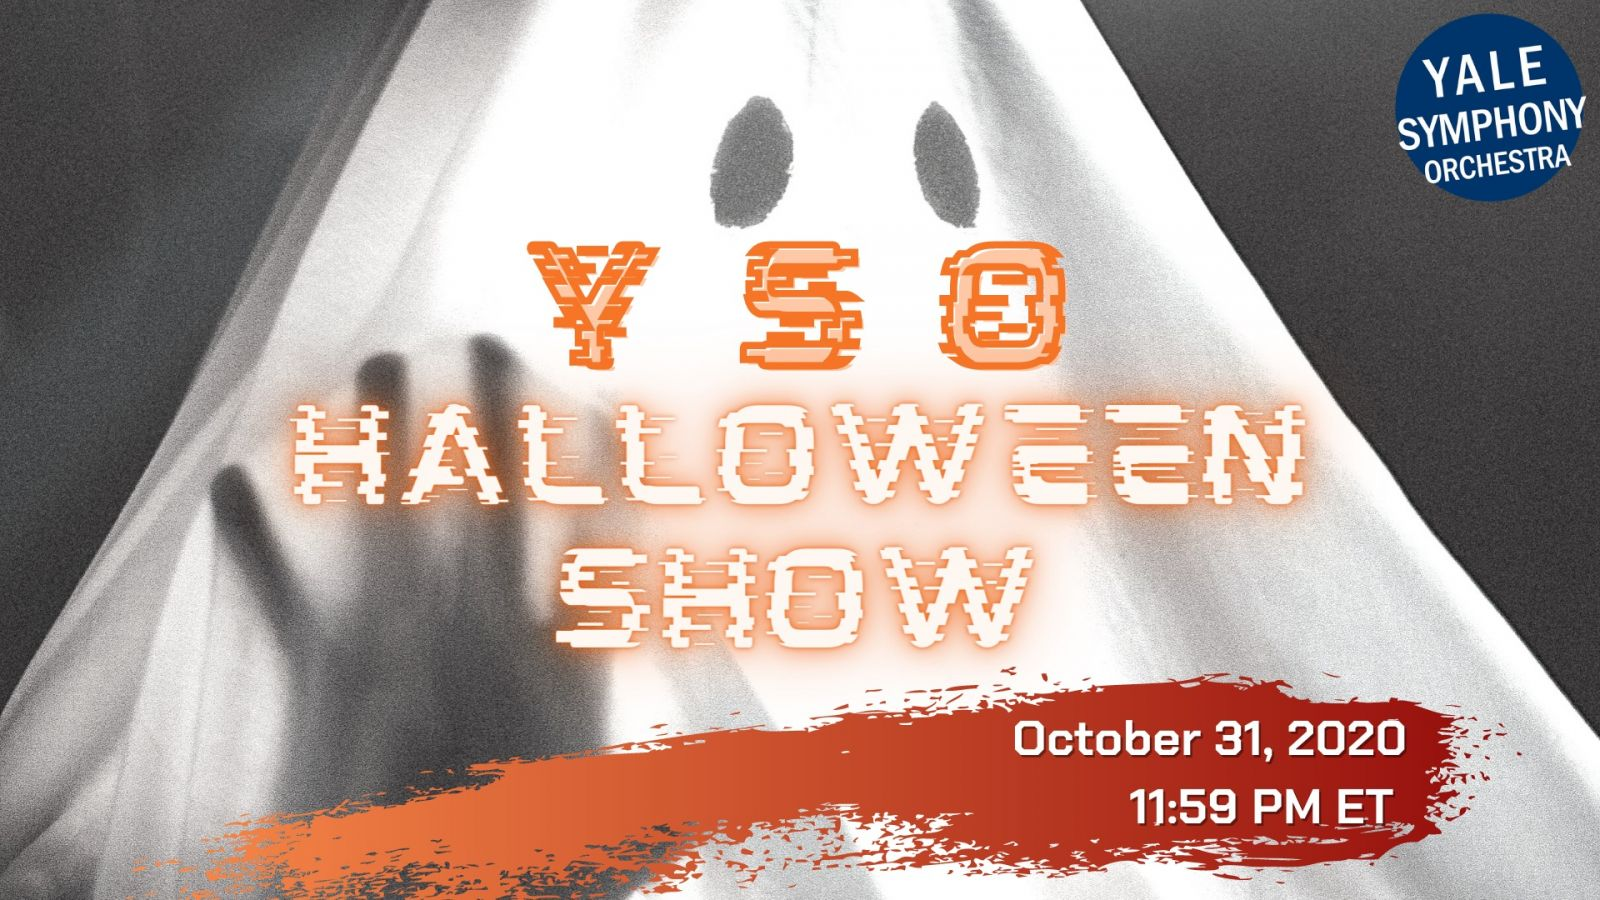 Poster for 2020 Halloween Concert. Orange and white lettering over an image of a sheet made to look like a ghost.